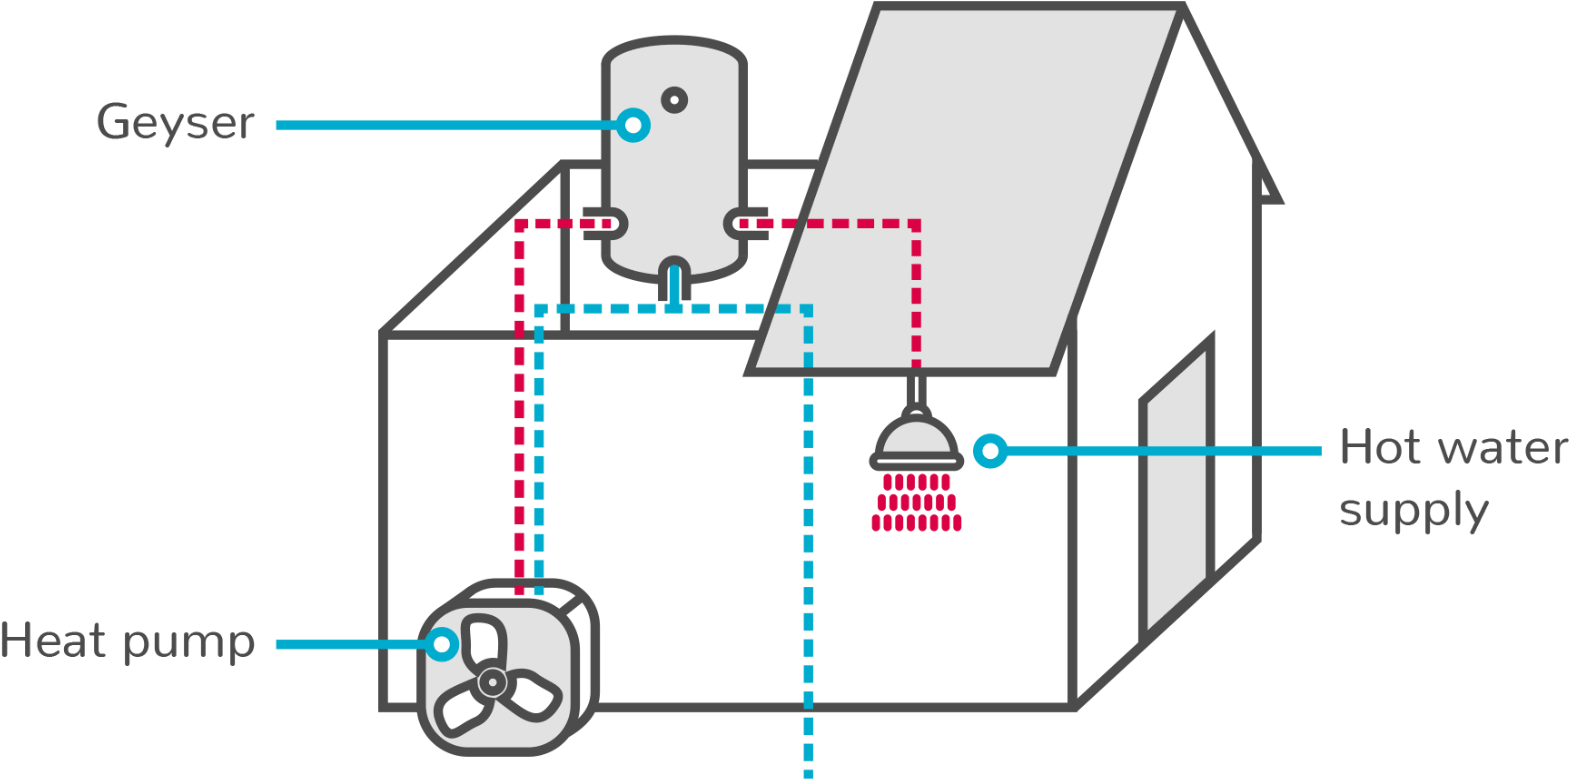 hight resolution of a typical heat pump system diagram 1659x1006 png download